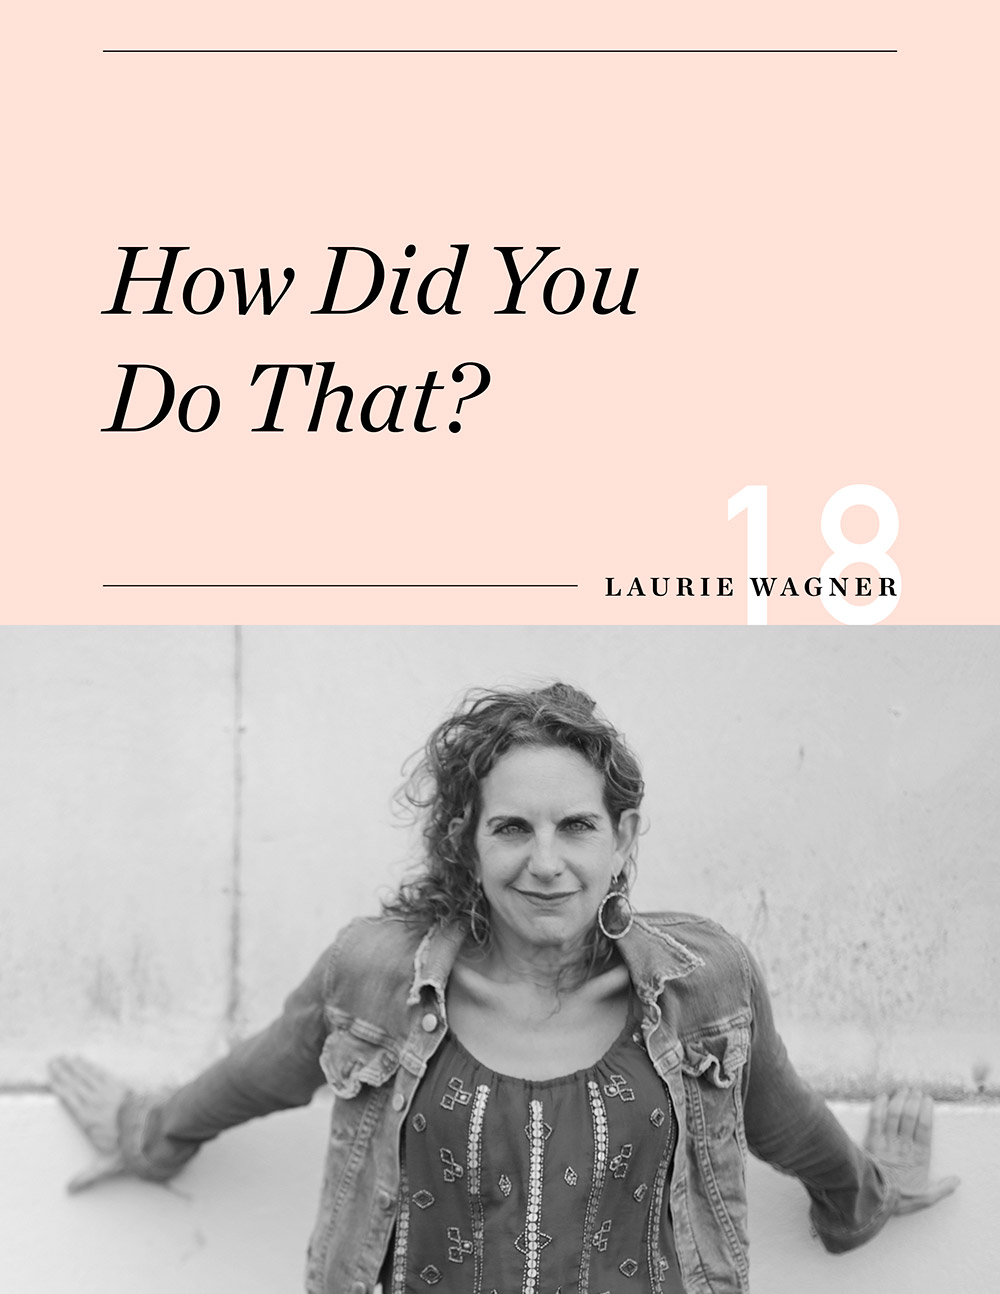 Ellen Fondiler | An Interview With Laurie Wagner